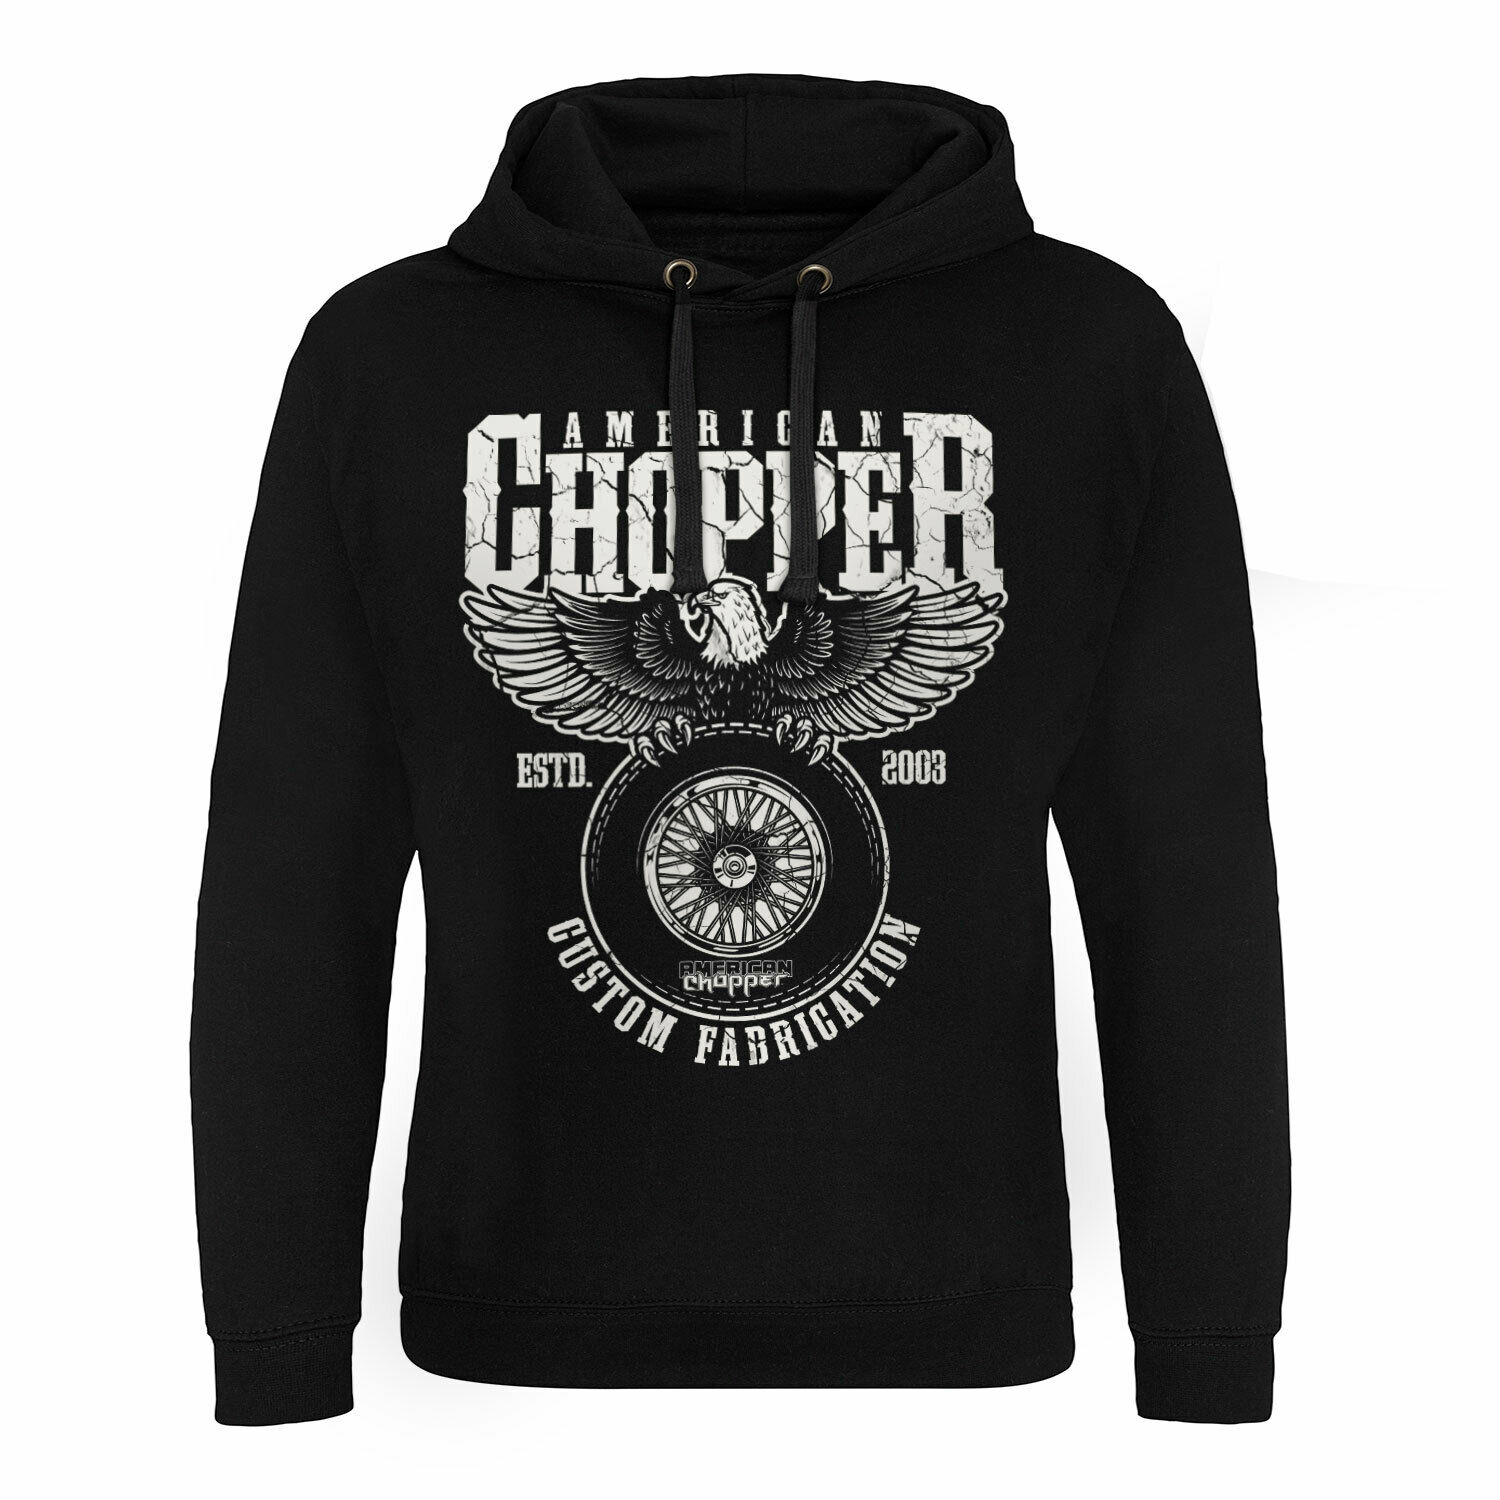 Officially Licensed American Chopper- Custom Fabrication Epic Hoodie S-XXL Sizes